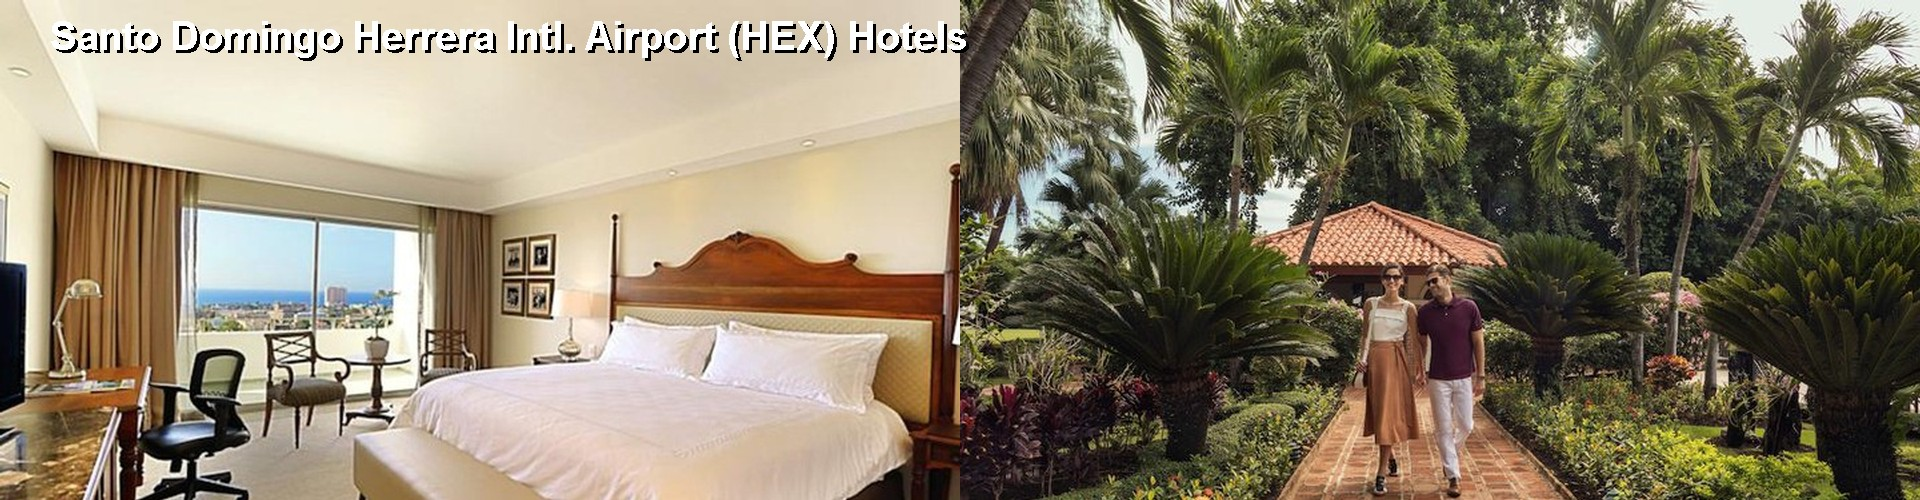 5 Best Hotels near Santo Domingo Herrera Intl. Airport (HEX)